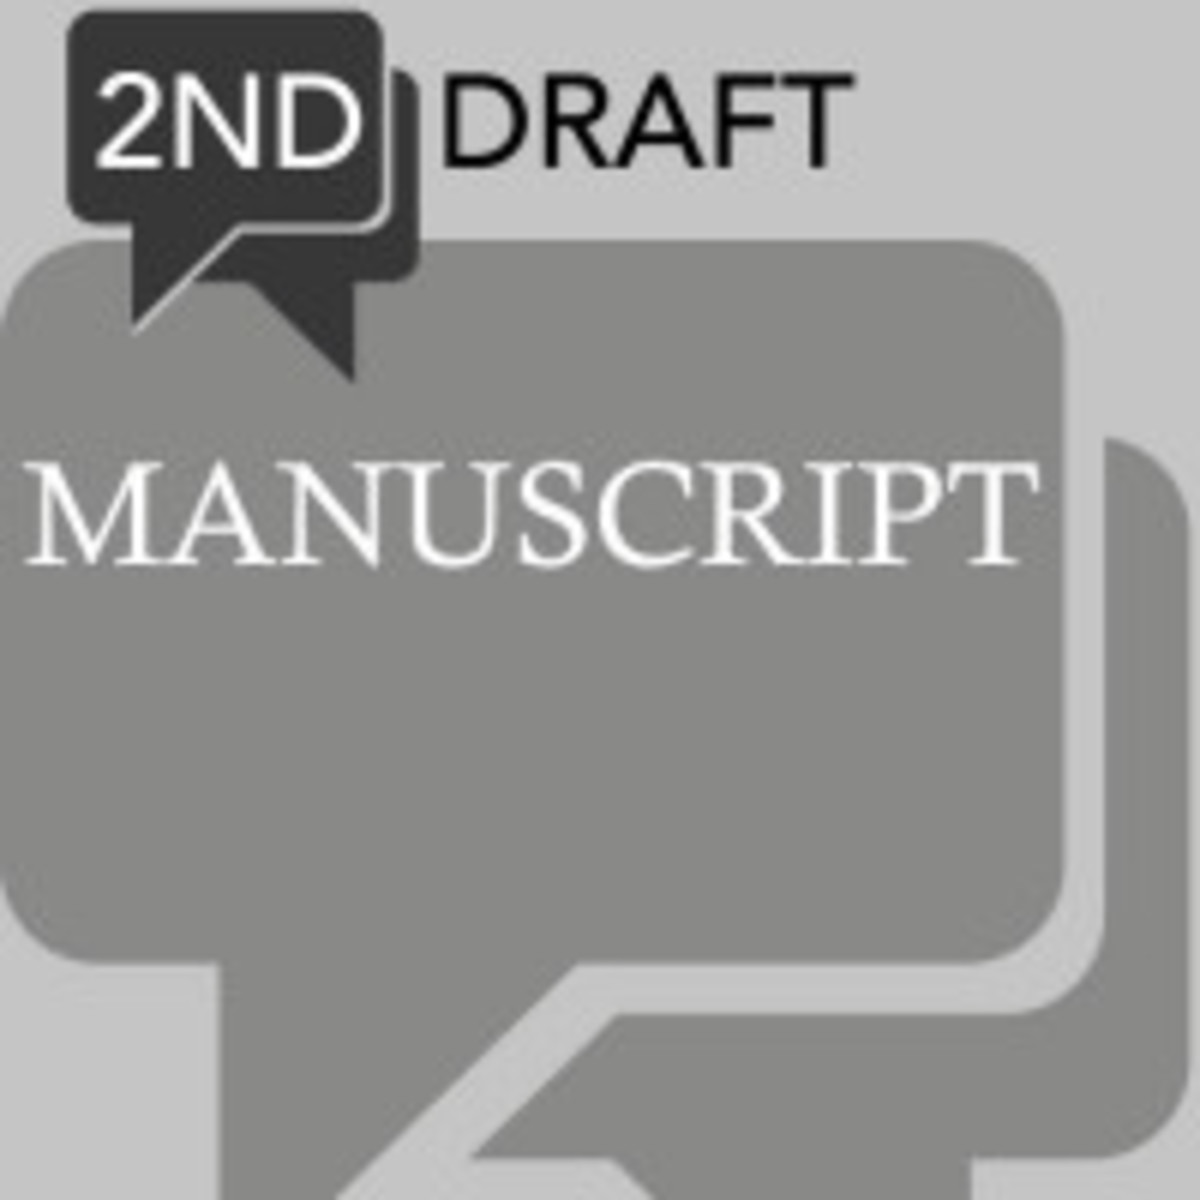 Ensure your manuscript skips the slush pile and lands on the desk of an acquisitions editor or literary agent and — get a 2nd Draft critique! When you send in at least 50 consecutive pages of your manuscript for review, you'll get an overall evaluation of your manuscript's strengths and weaknesses.